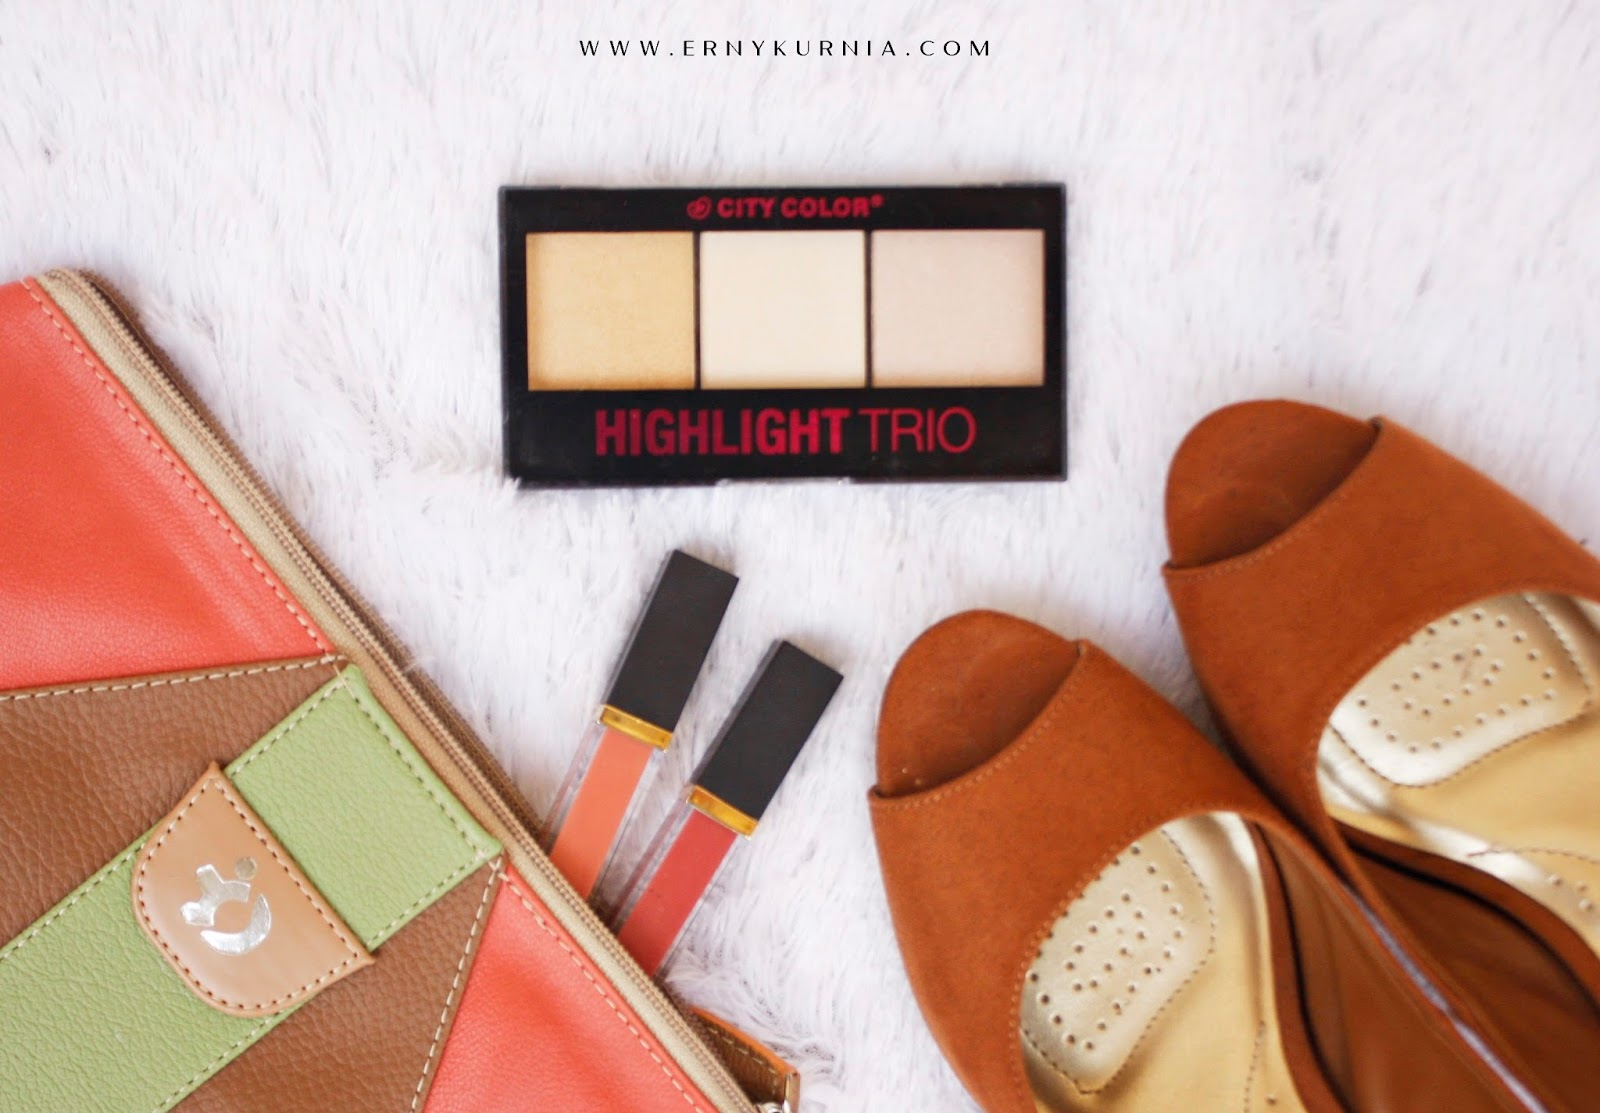 City Color Trio Highlighter, Erny Kurnia, Erny Kurnia Review, Review Highlighter, Highlighter murah,